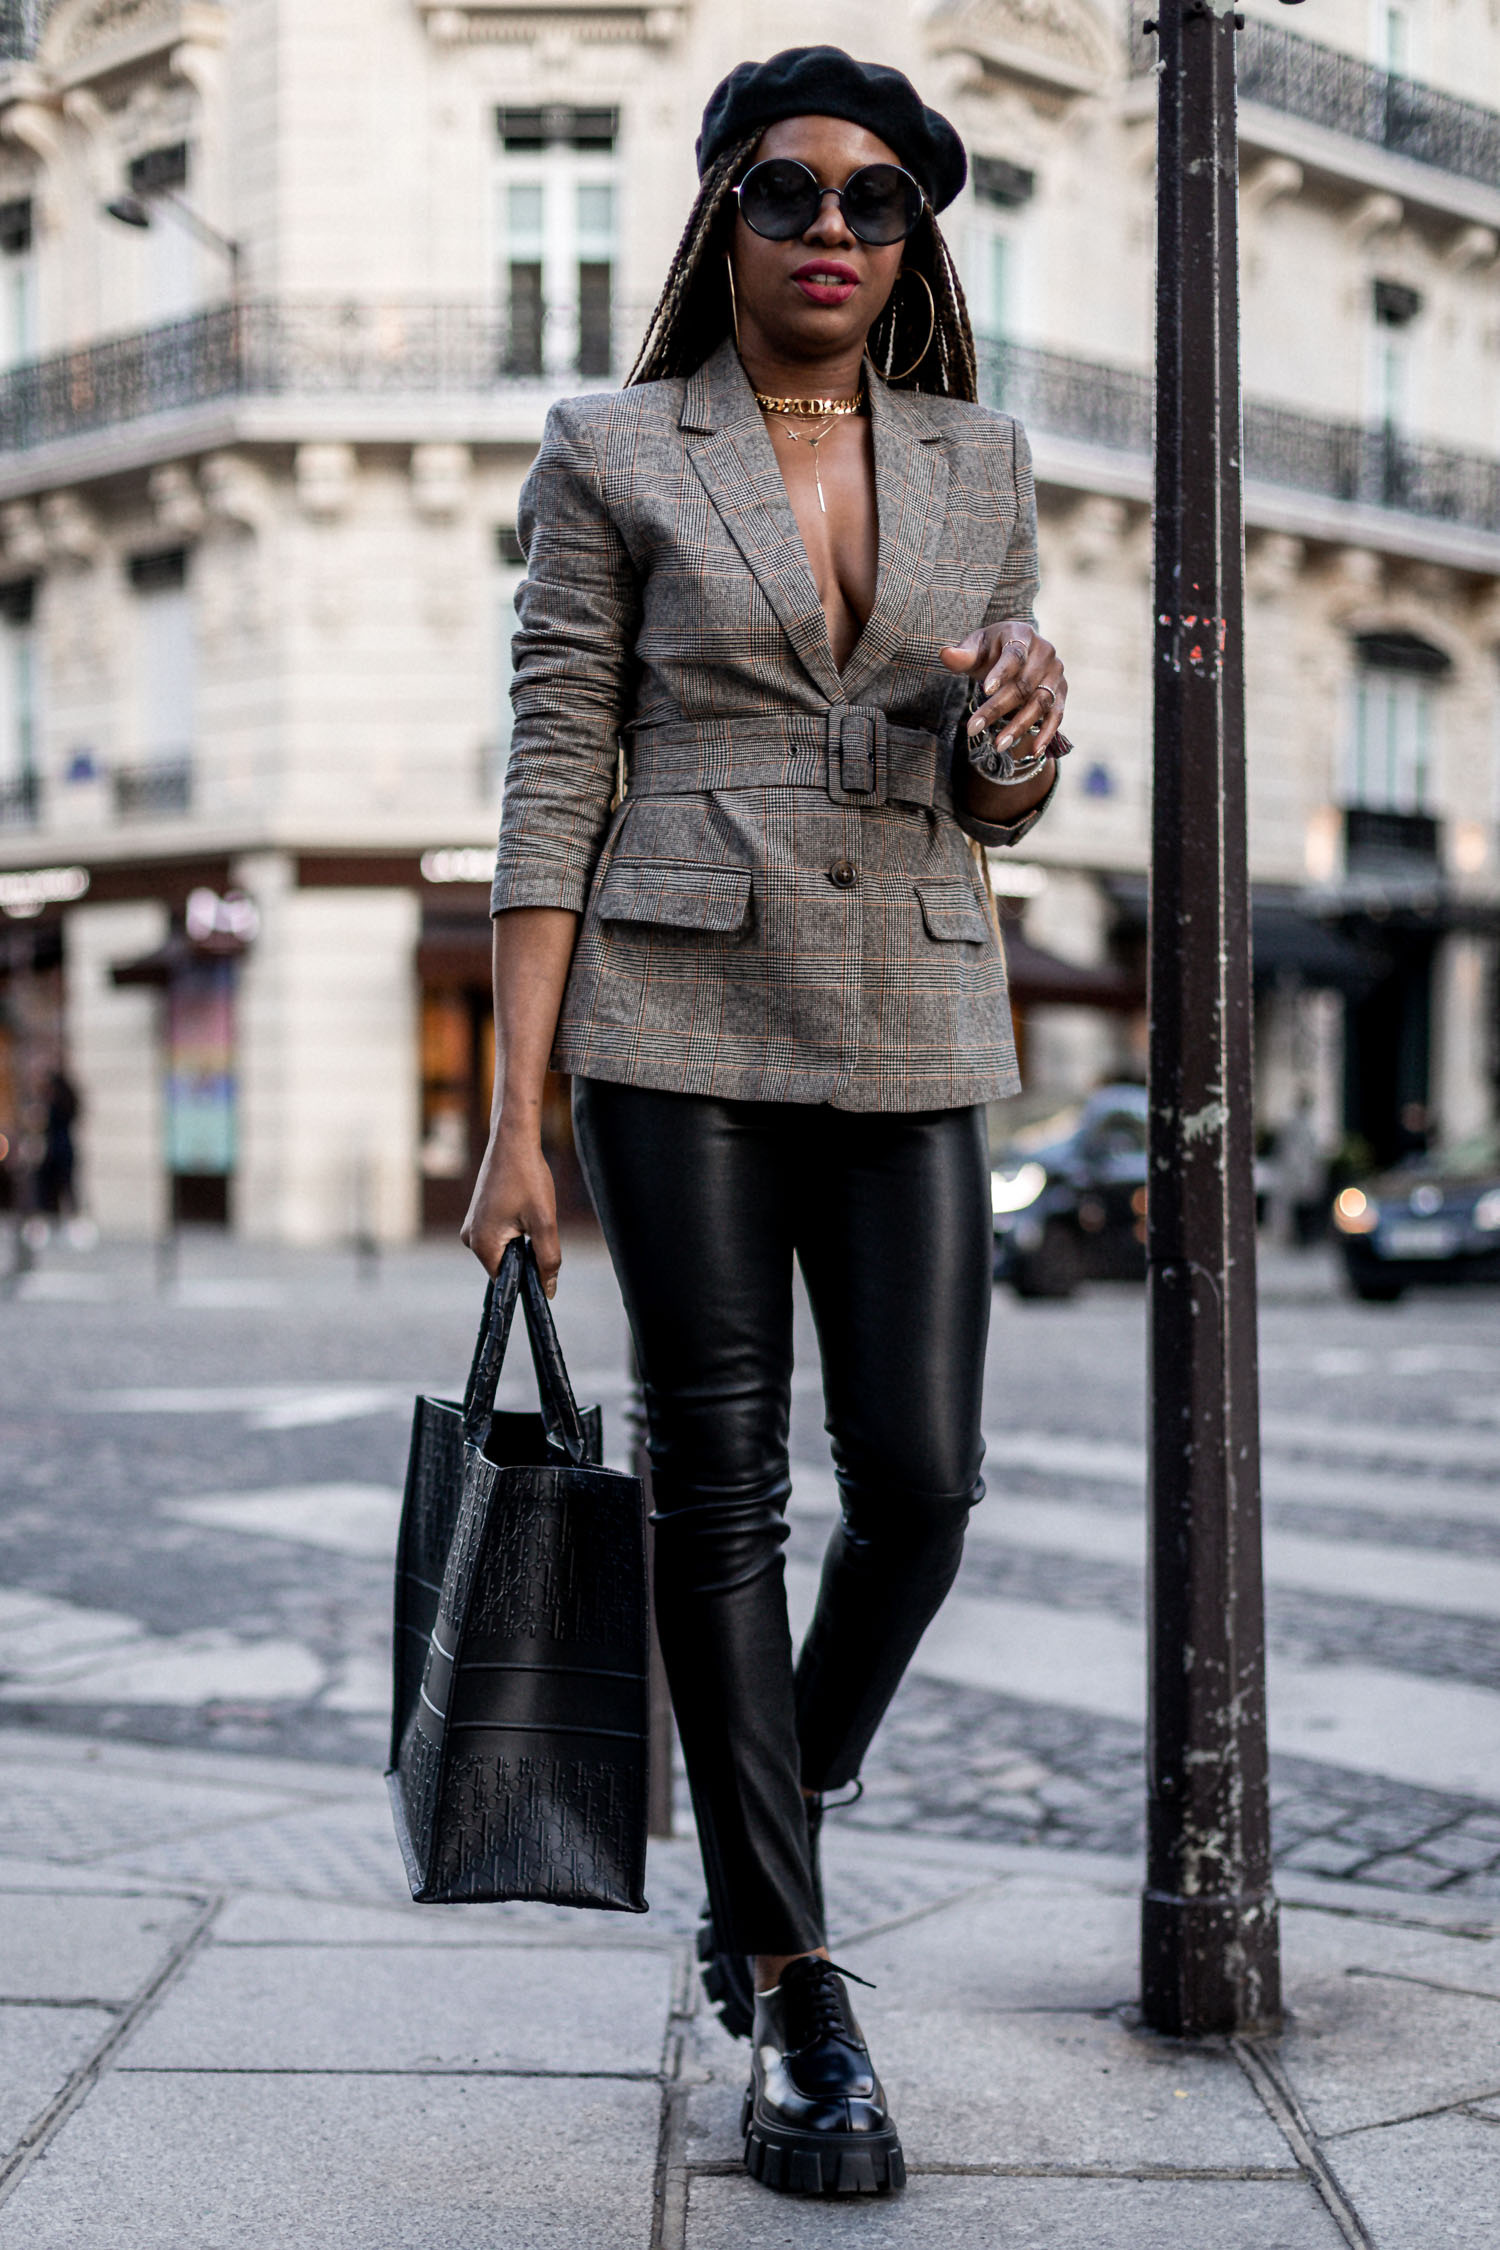 atlanta fashion blogger wearing plaid blazer, leather pants and dior book tote dior oblique bag in leather, BB dakota belted blazer, leather leggings, prada creepers, how to style prada creepers, round sunglasses, how to style round sunglasses, paris france, what to wear to paris fashion week, paris fashion week recap, black blogger in paris, top bloggers, fashion bloggers in paris, paris blogger, atlanta blogger, fashion trends